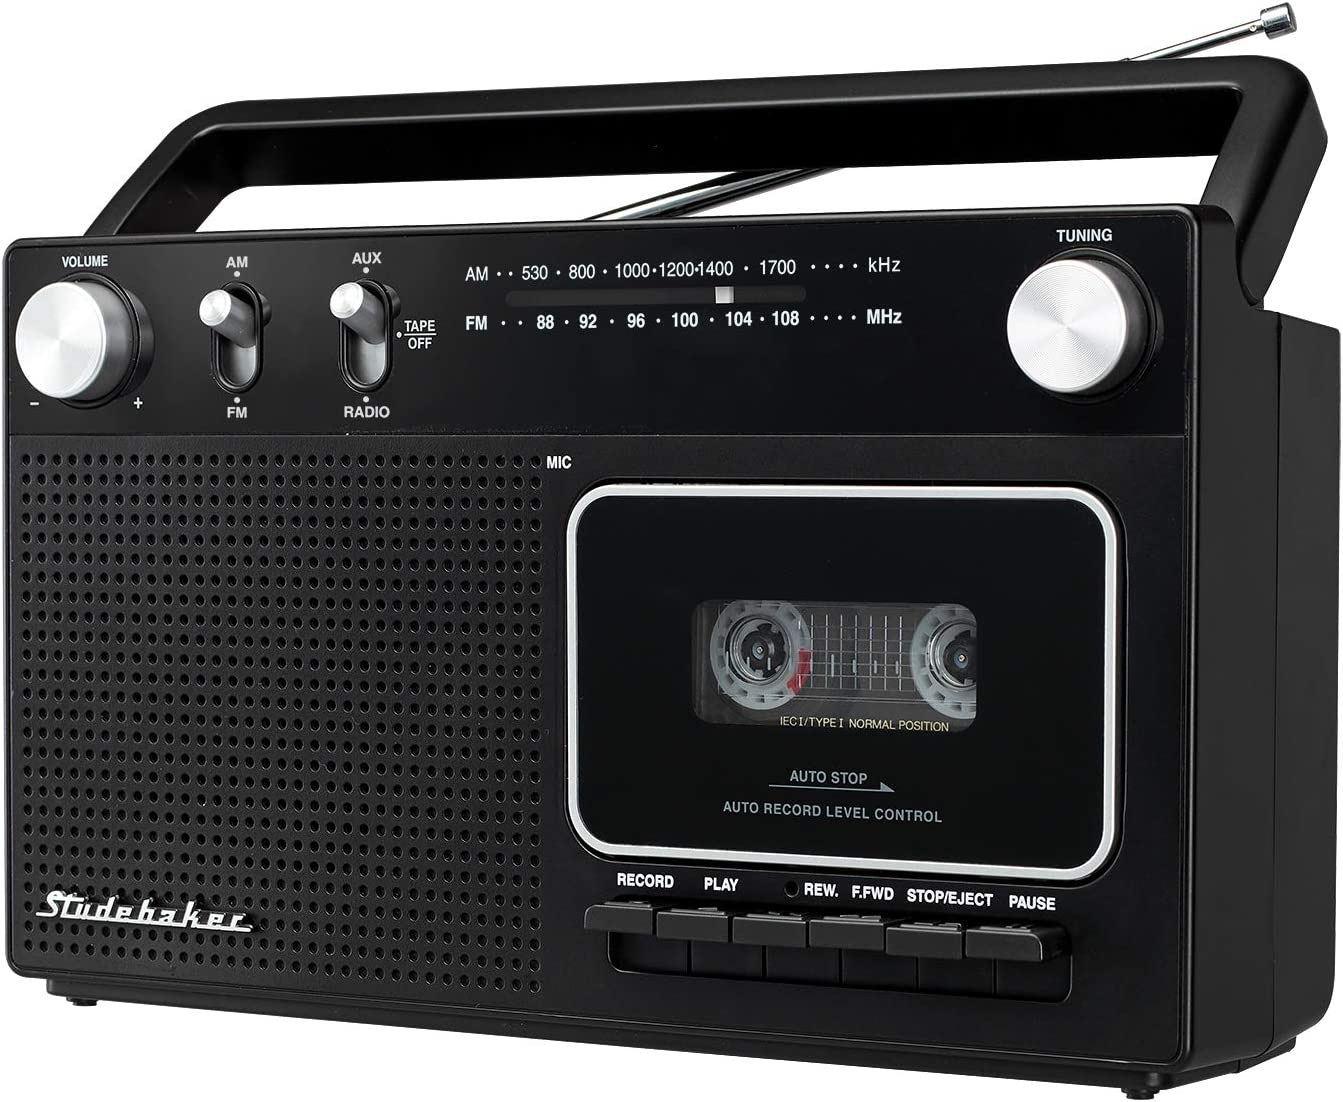 Studebaker Portable Retro Home Audio Stereo AM/FM Radio & Cassette Player/Recorder with Aux Input Jack & Built in Speakers (Silver)